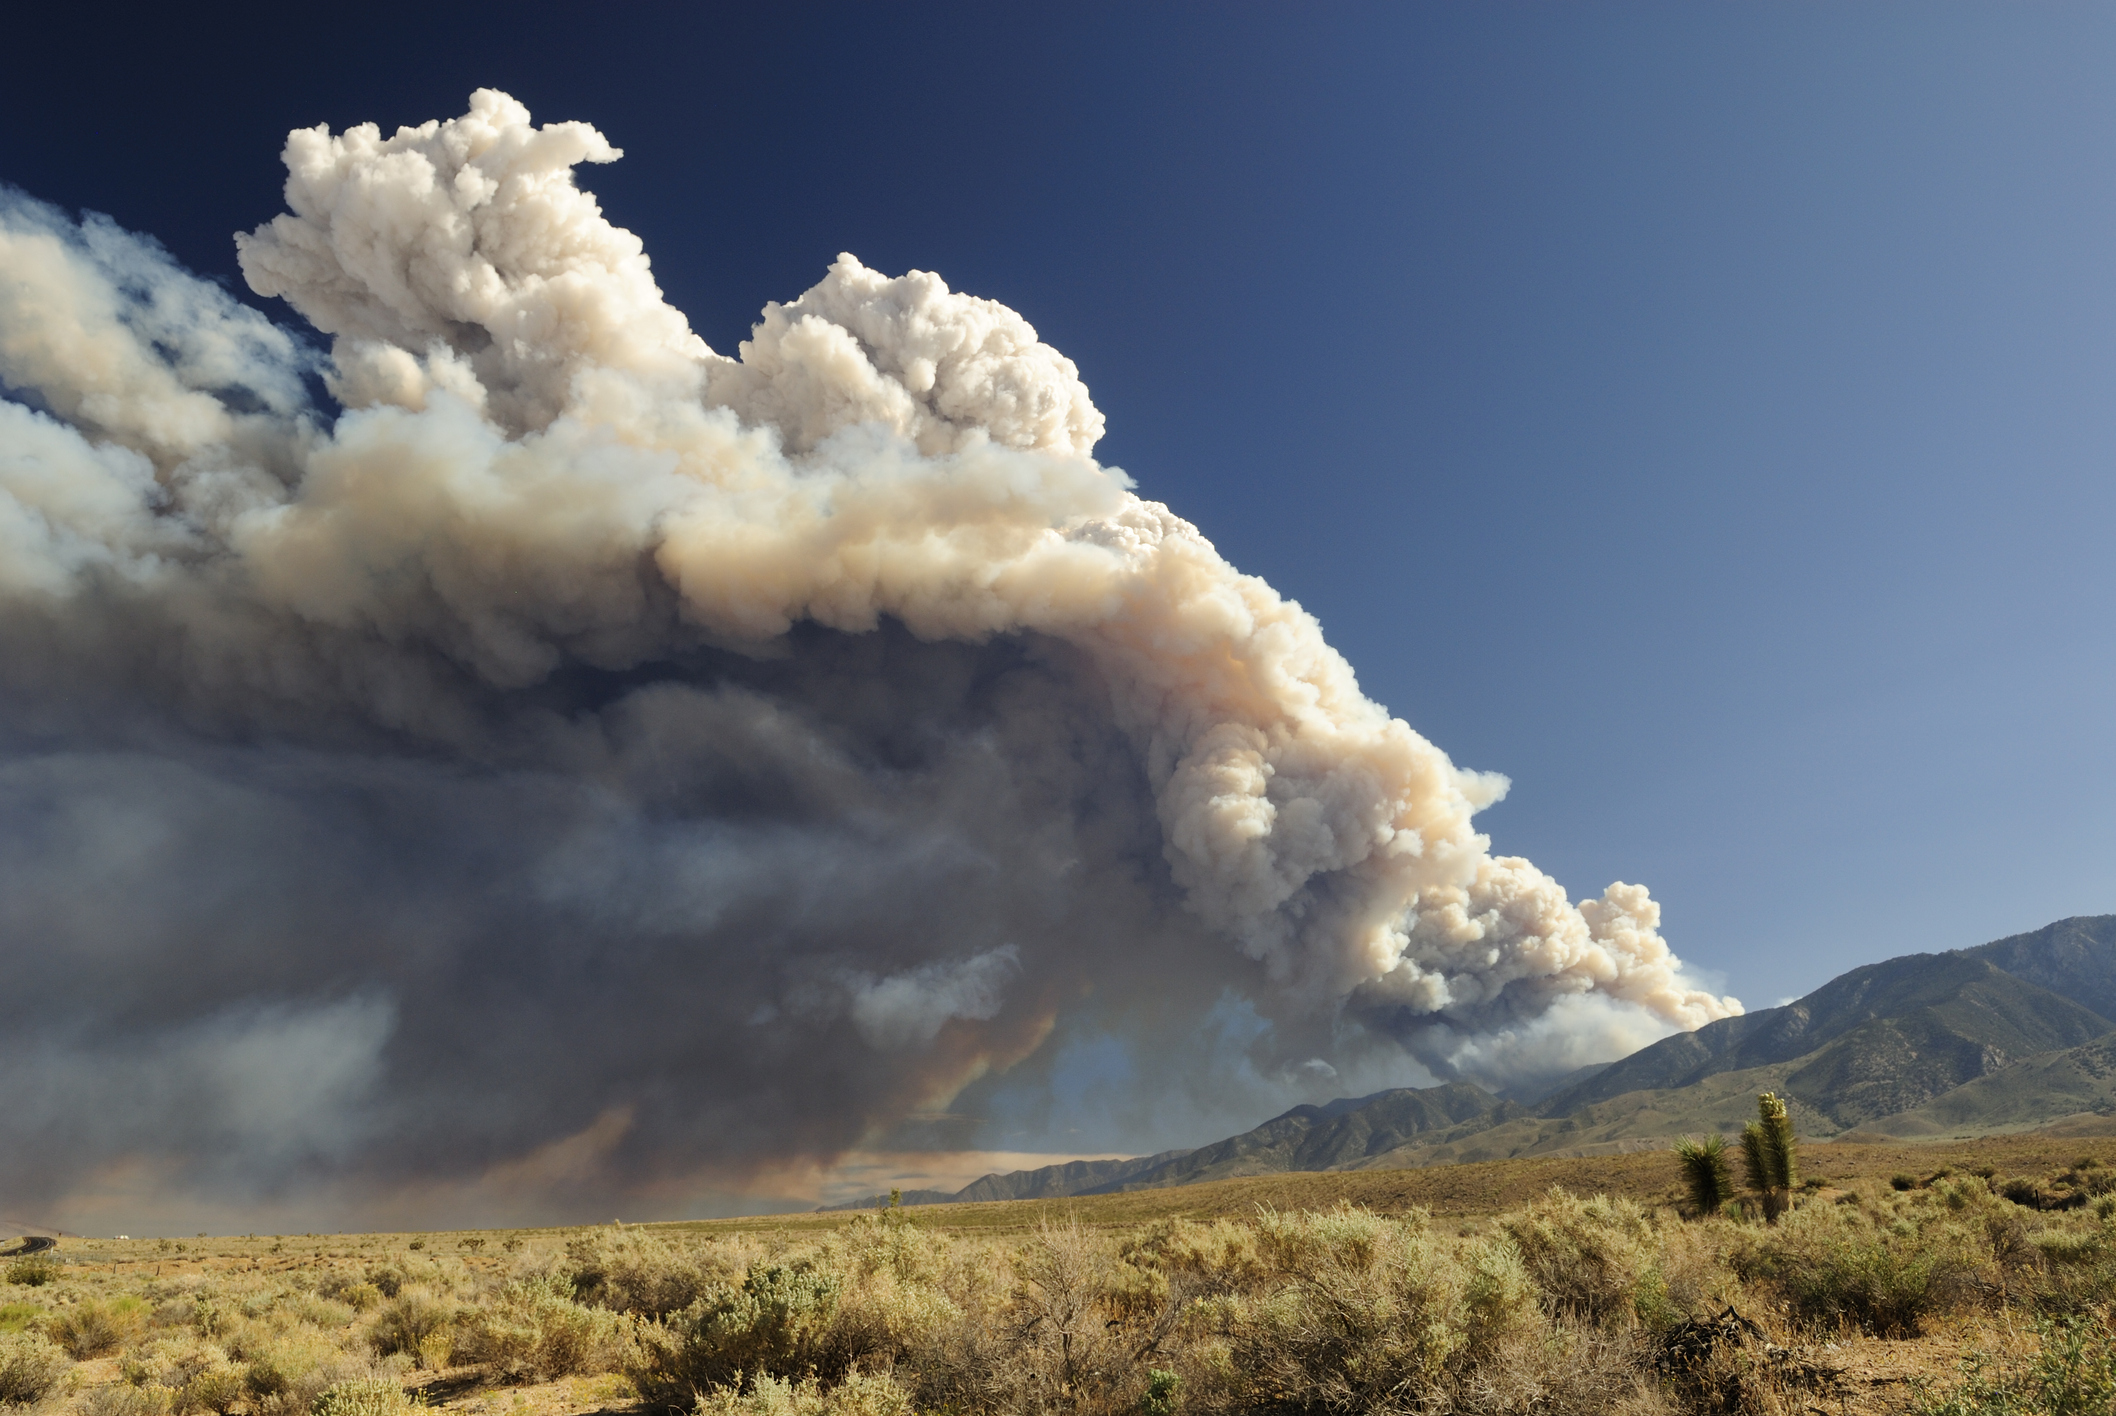 Cloud of smoke from a California wildfire